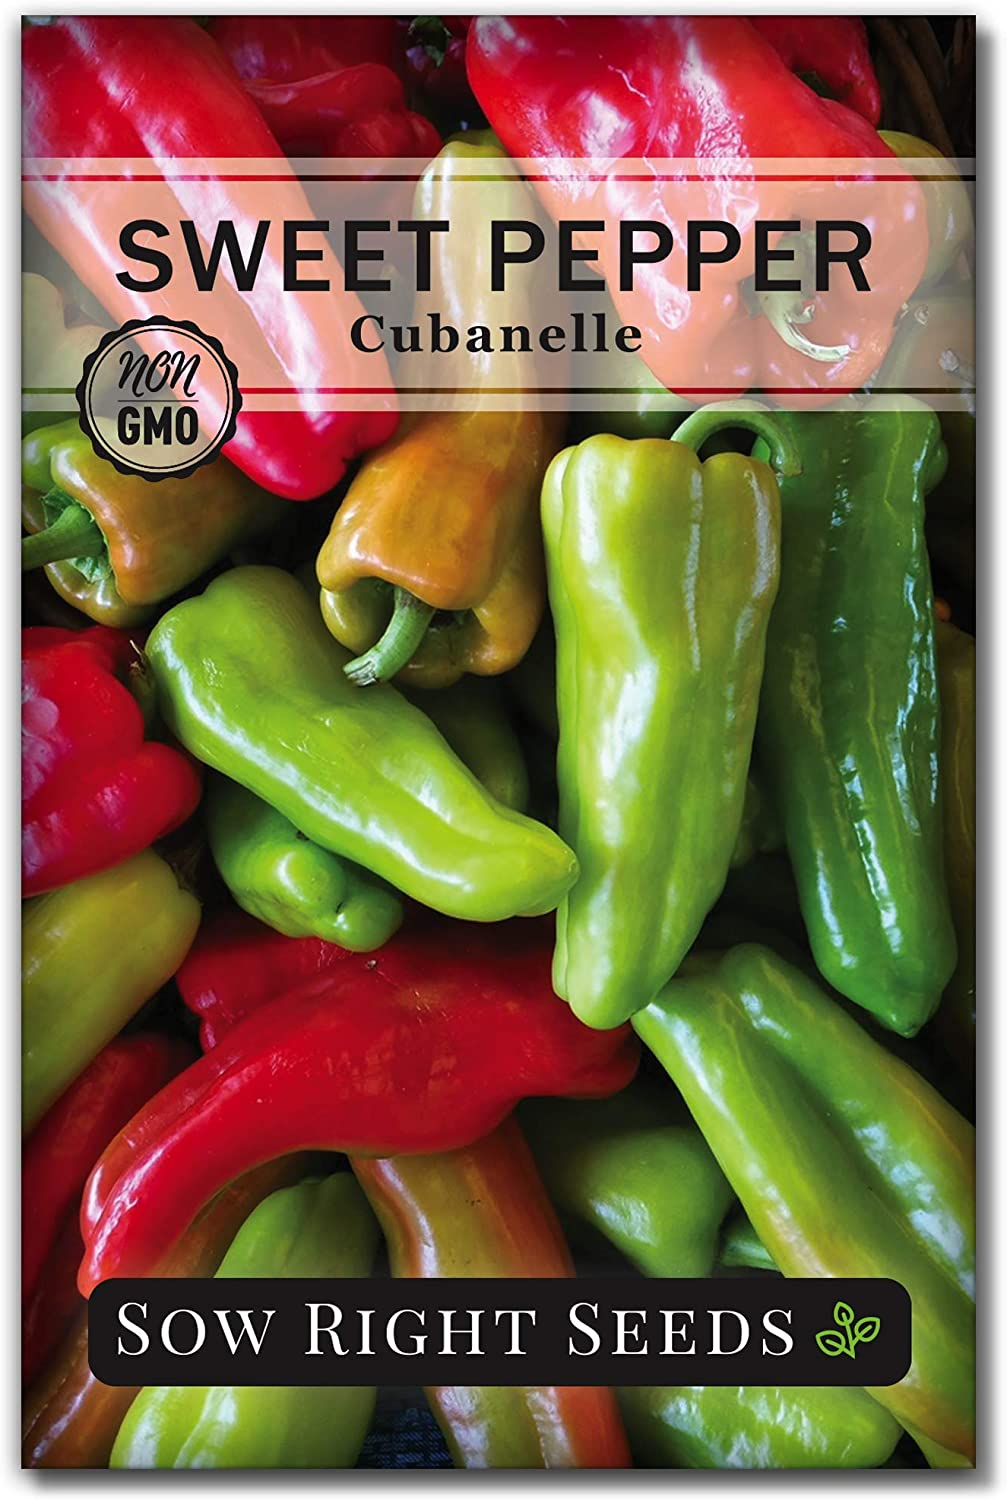 Sow Right Seeds - Cubanelle Pepper Seed for Planting - Non-GMO Heirloom Packet with Instructions to Plant an Outdoor Home Vegetable Garden - Great Gardening Gift (1)